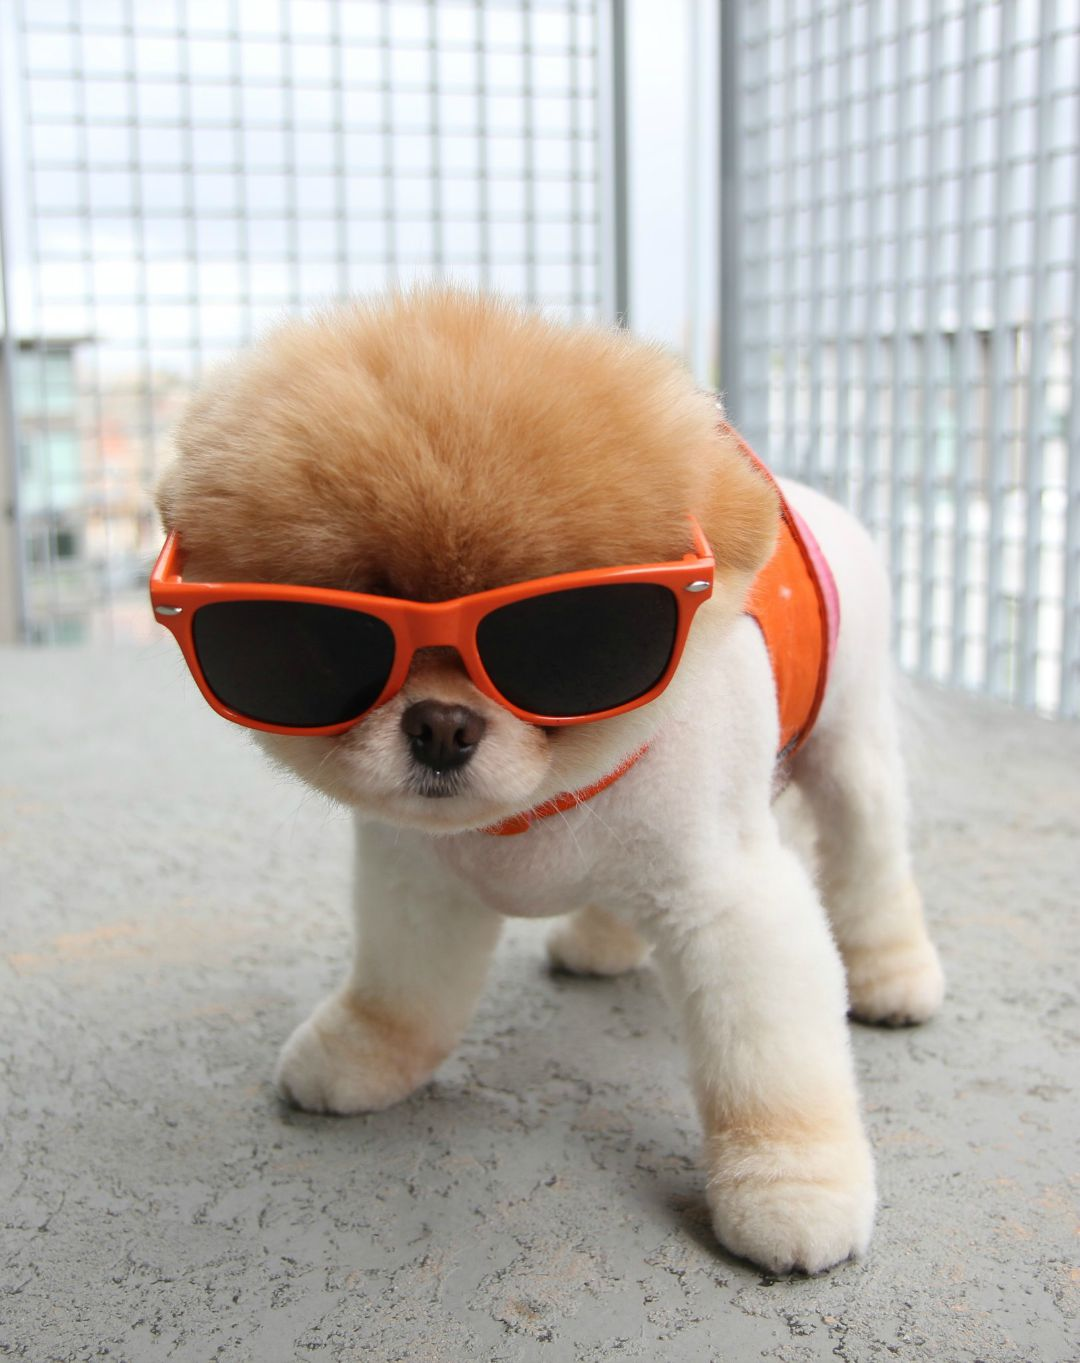 boo-the-dog-sunglasses